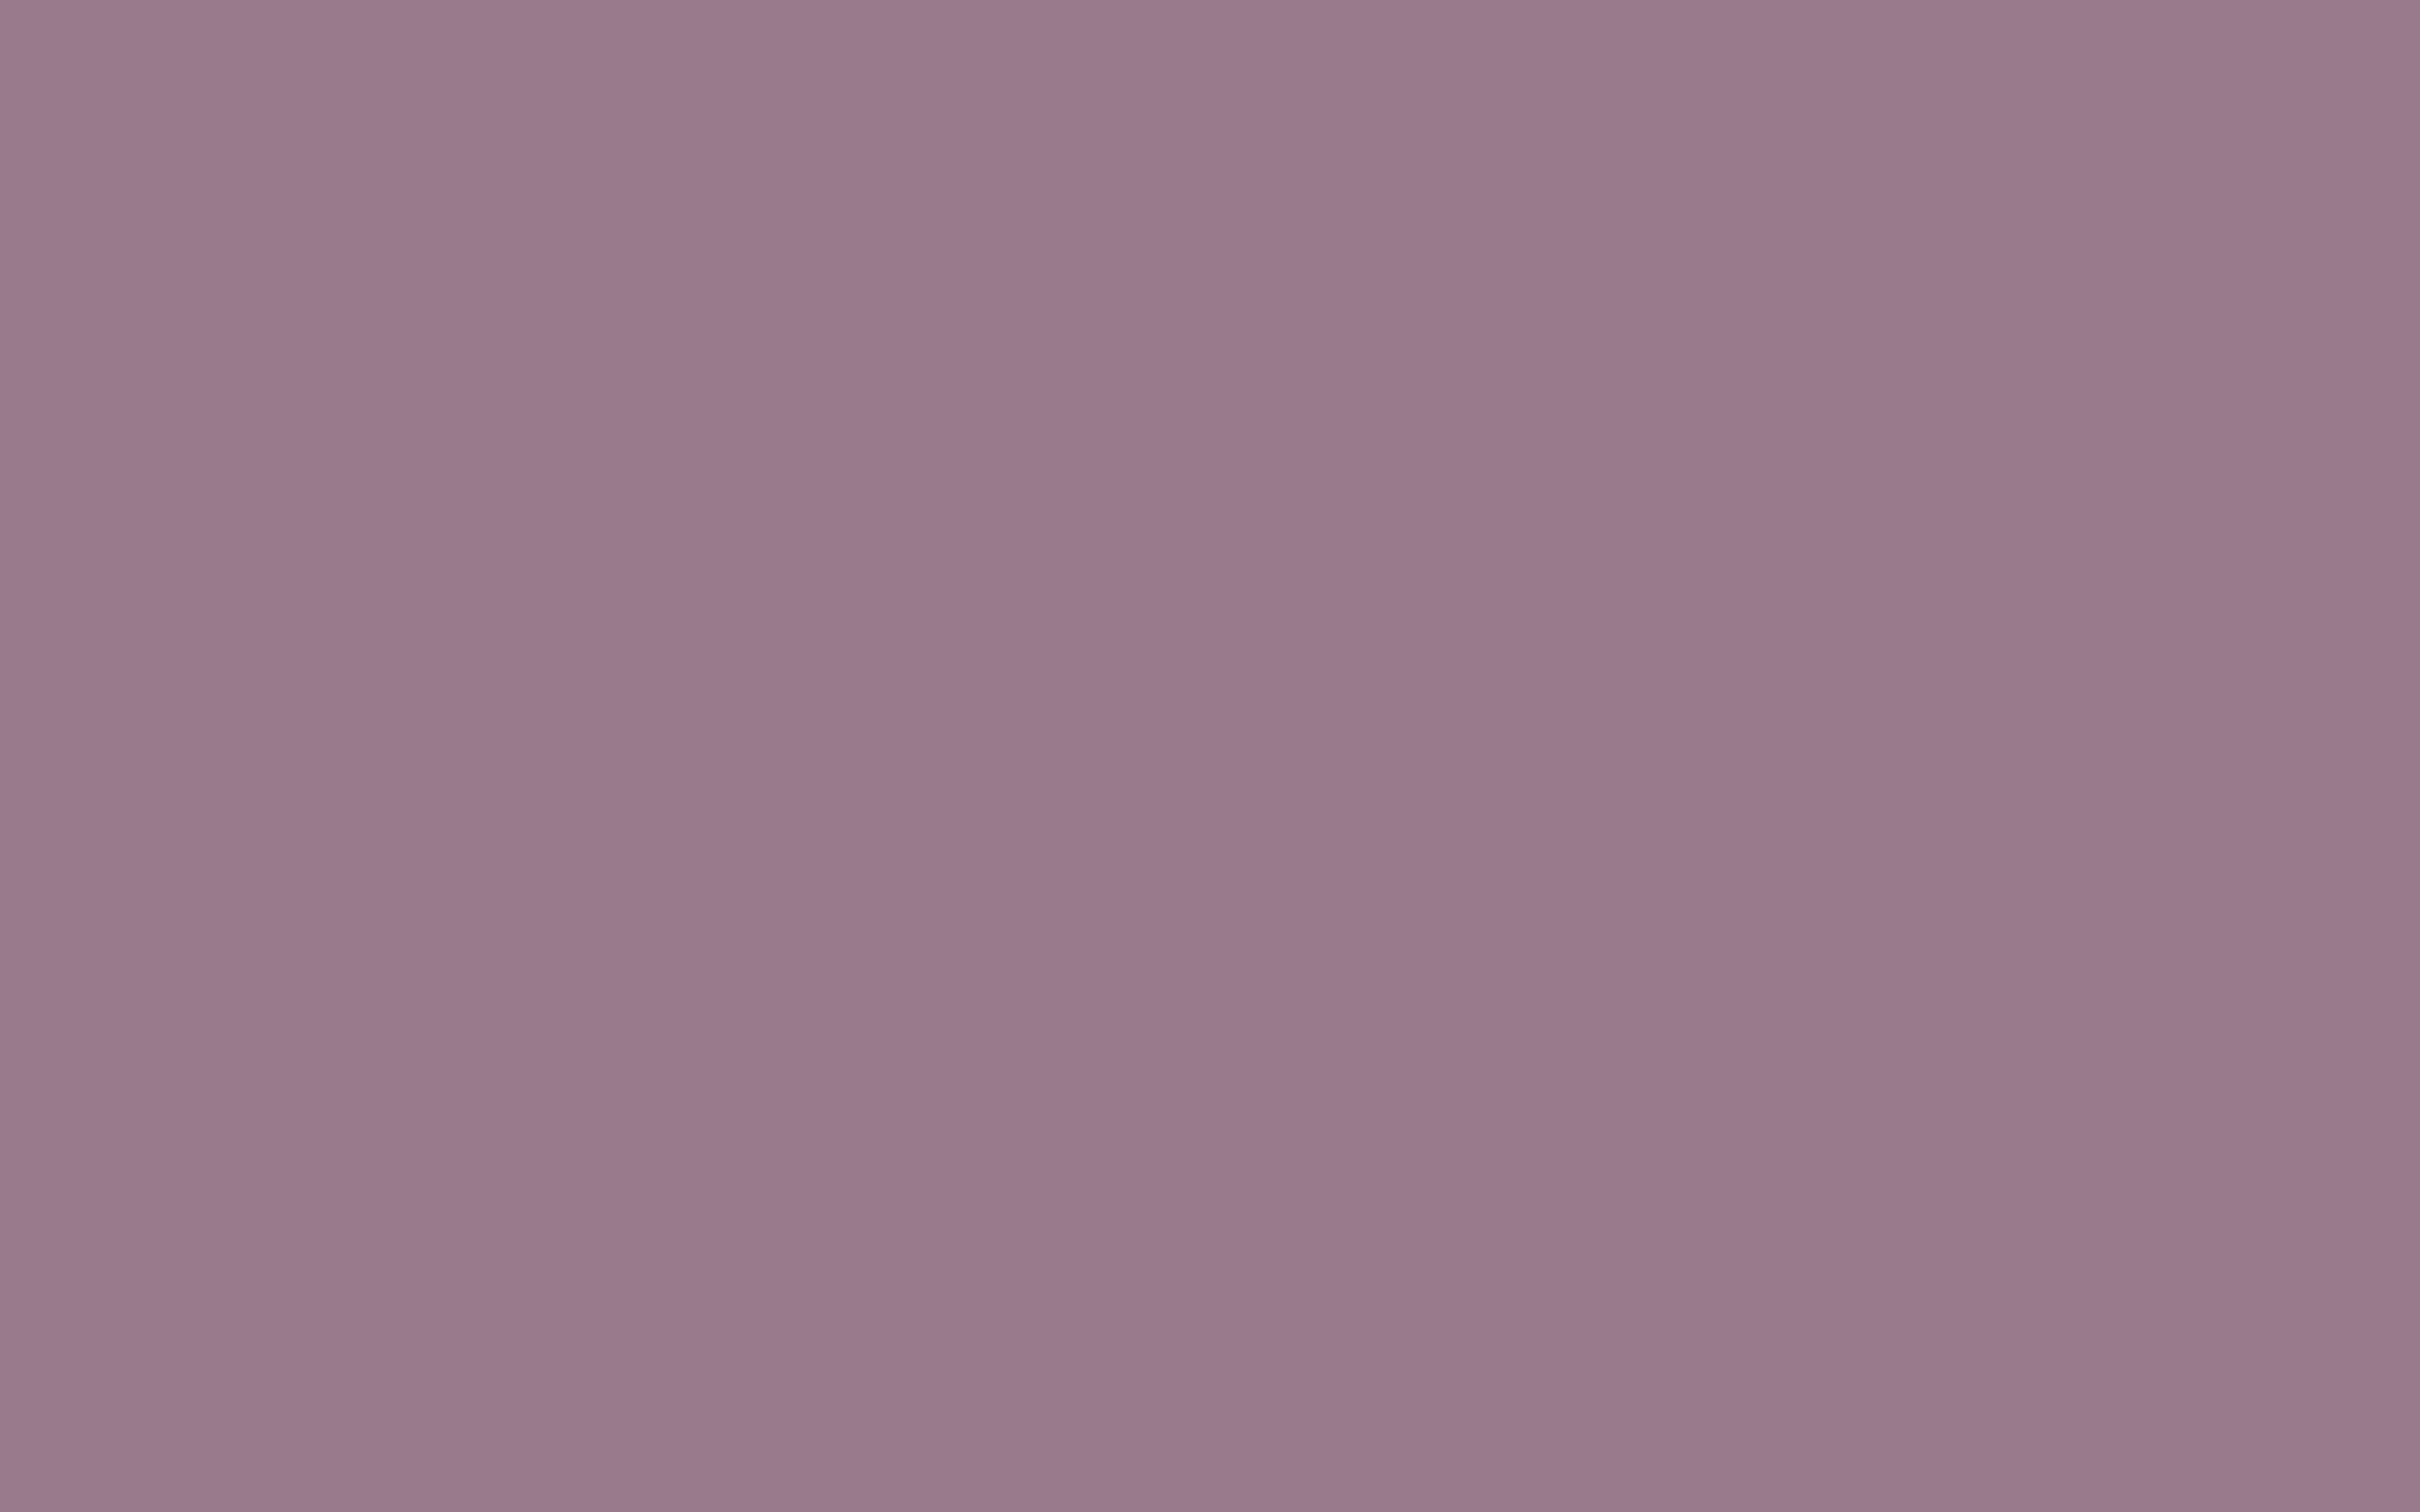 2880x1800 Mountbatten Pink Solid Color Background